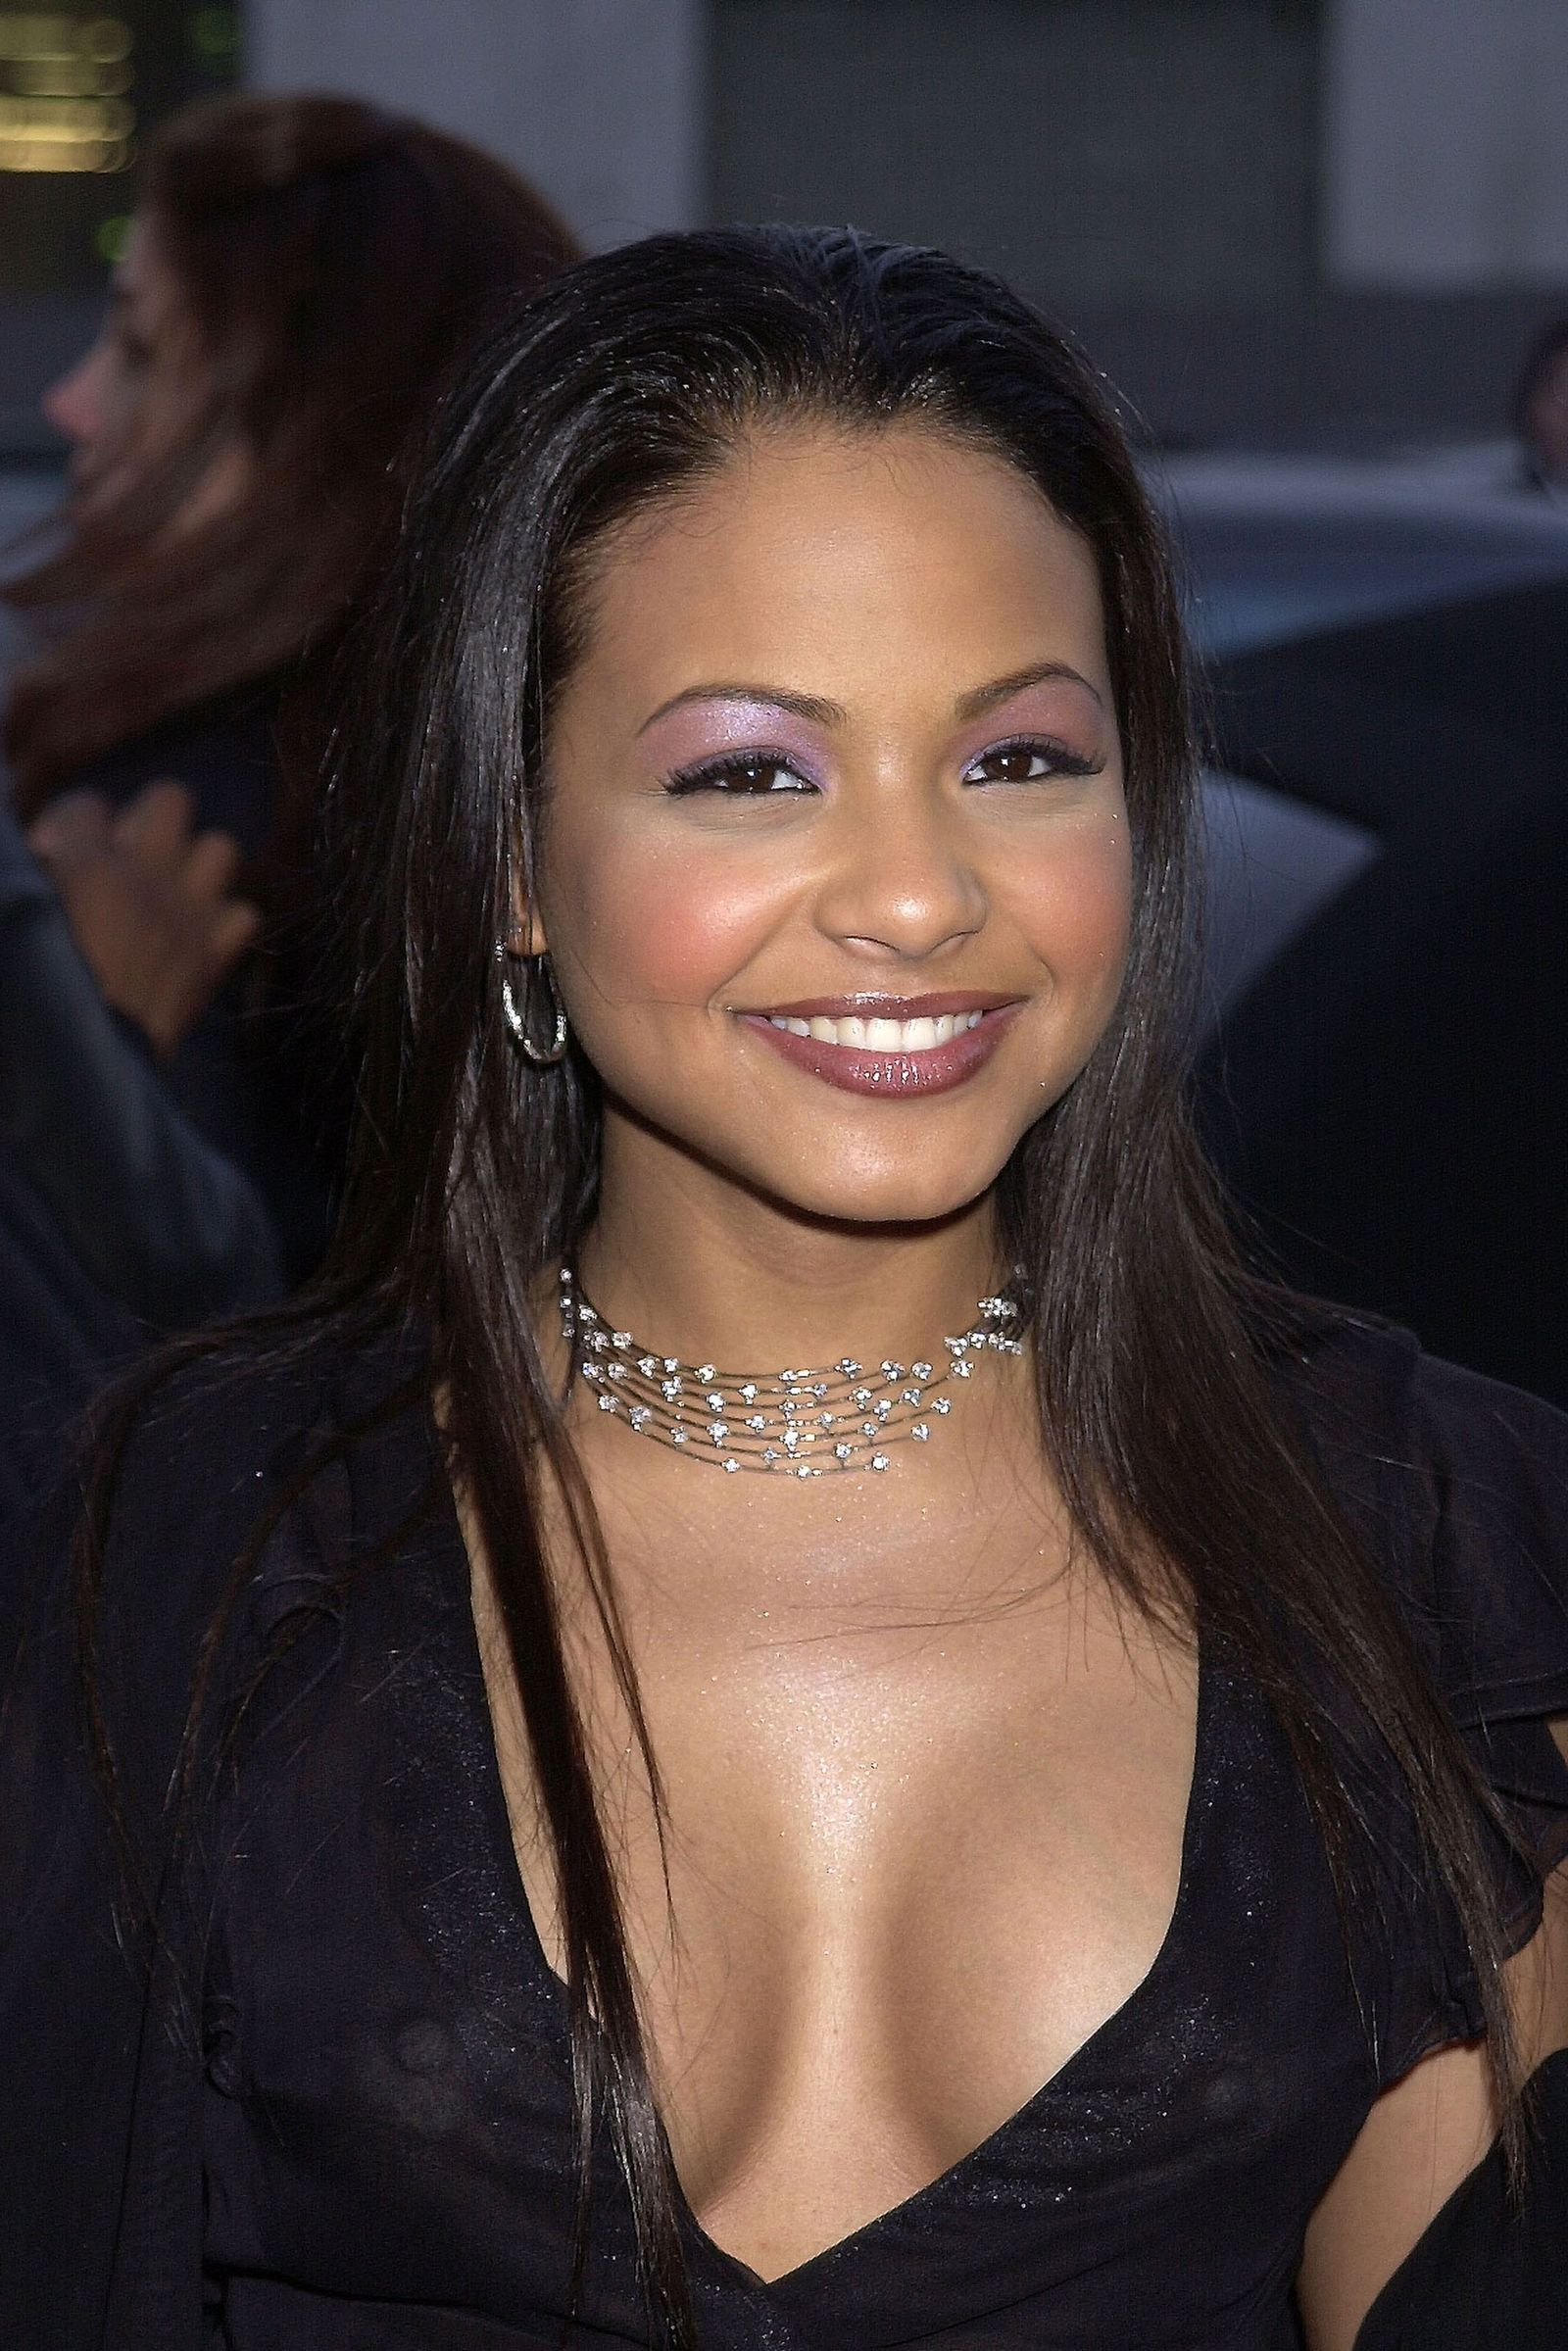 Discussion on this topic: Heather Kemesky Nude Photos and Videos, christina-milian-and-her-perfect-pokies/